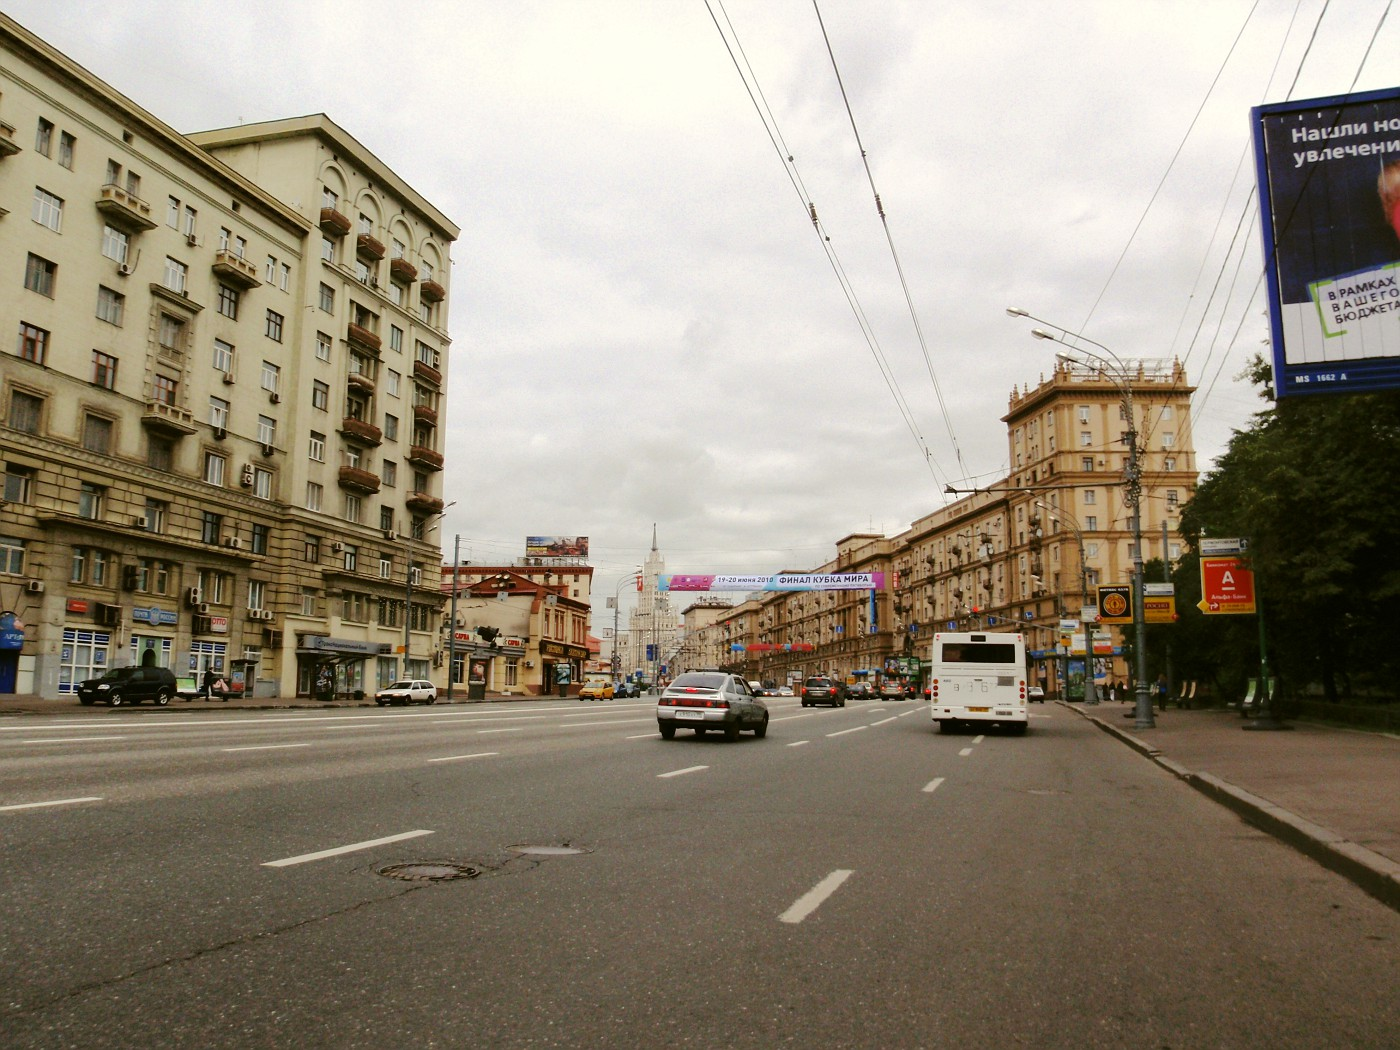 In Moscow on the way to the railway station